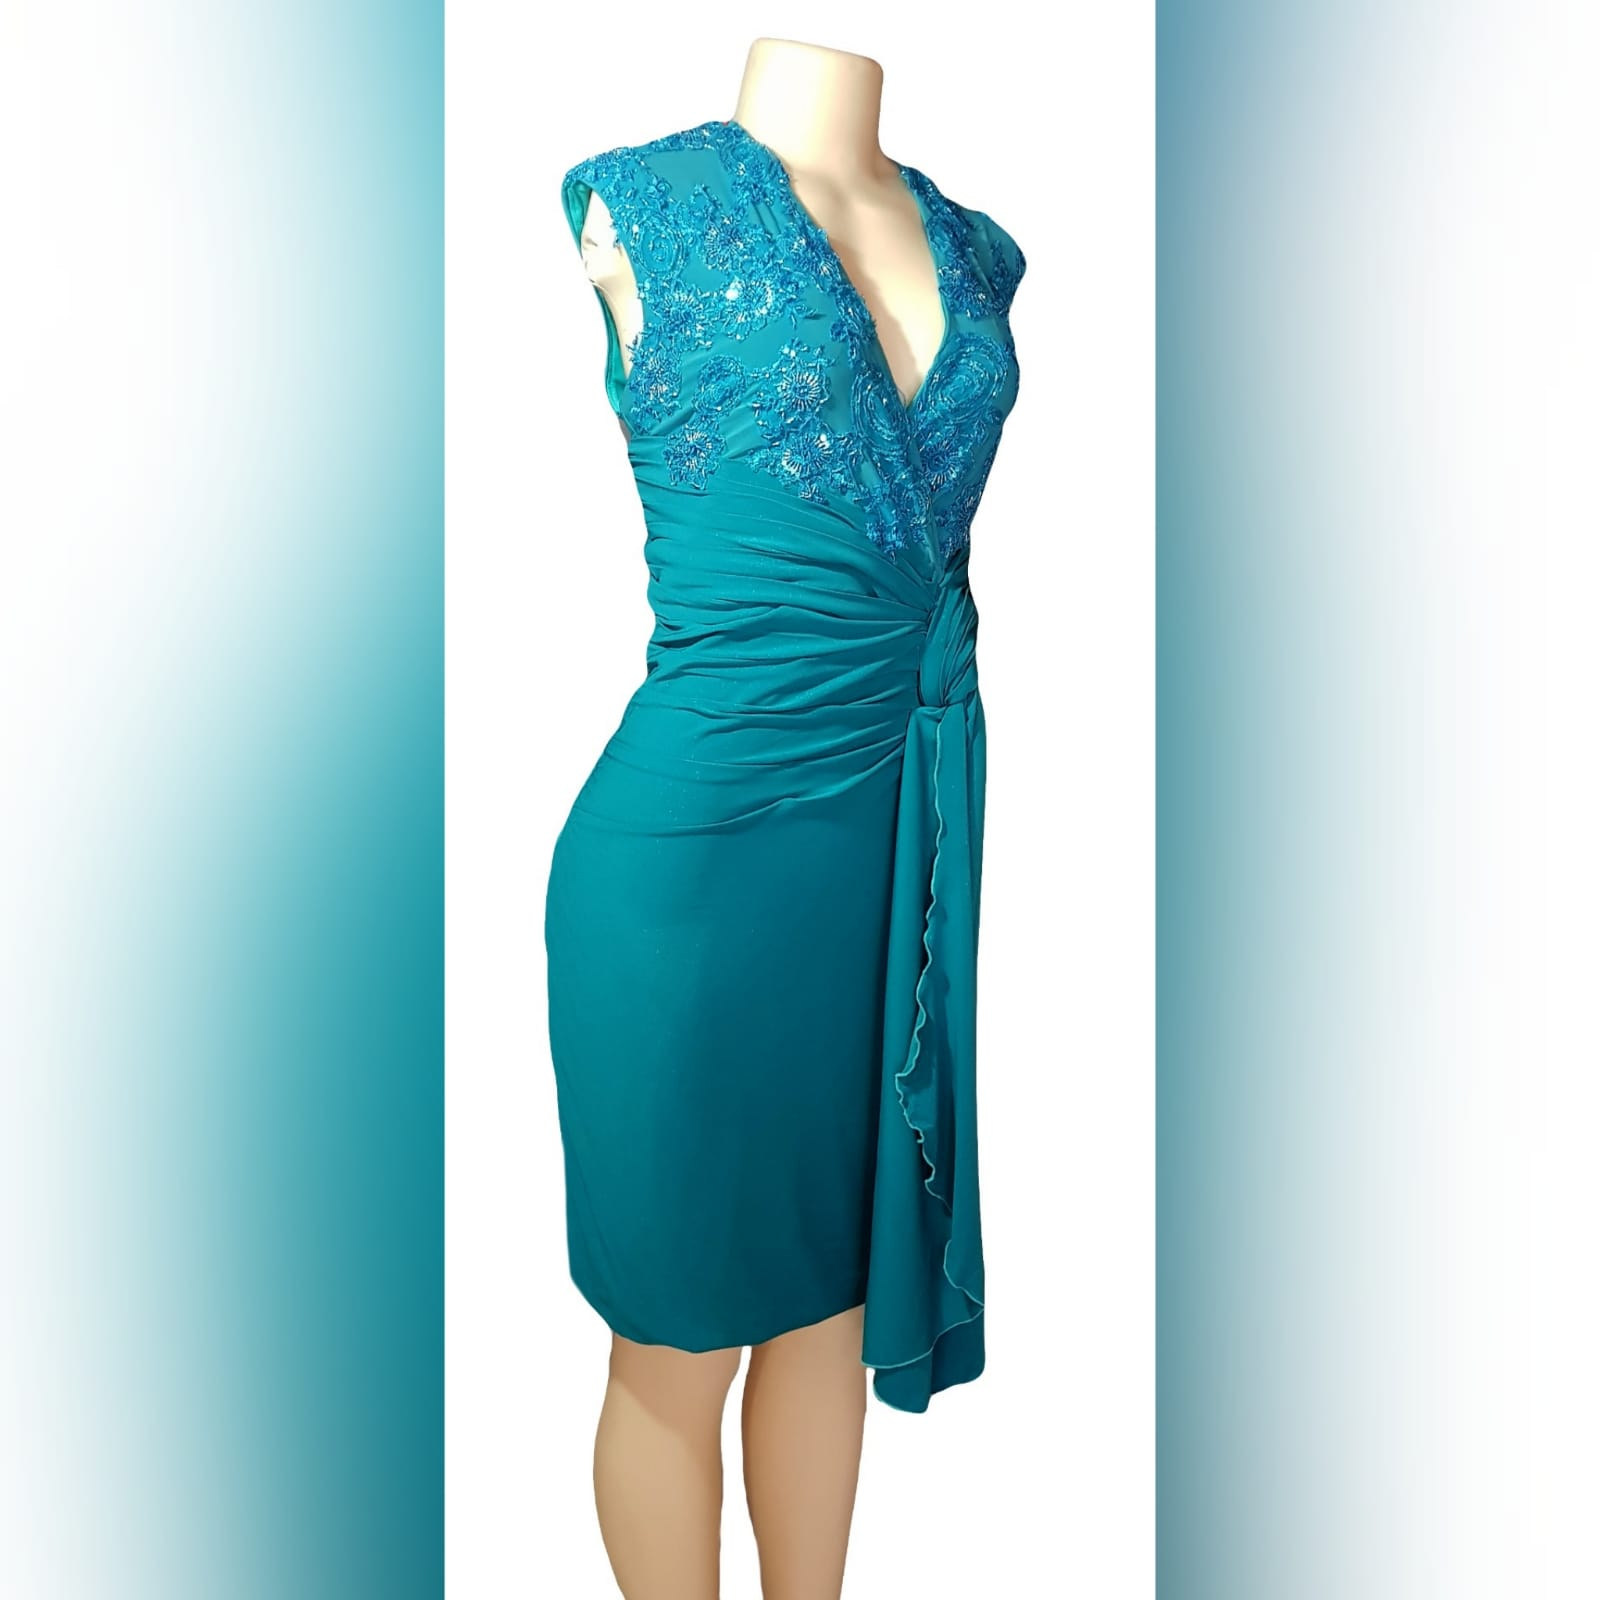 Pencil fit turquoise knee length formal dress 4 a pencil fit turquoise knee length formal dress, created for a wedding for mother of bride. This simple elegant design has a crossed v neckline detailed with beaded lace. A ruched belt with ends on the side over the dress.